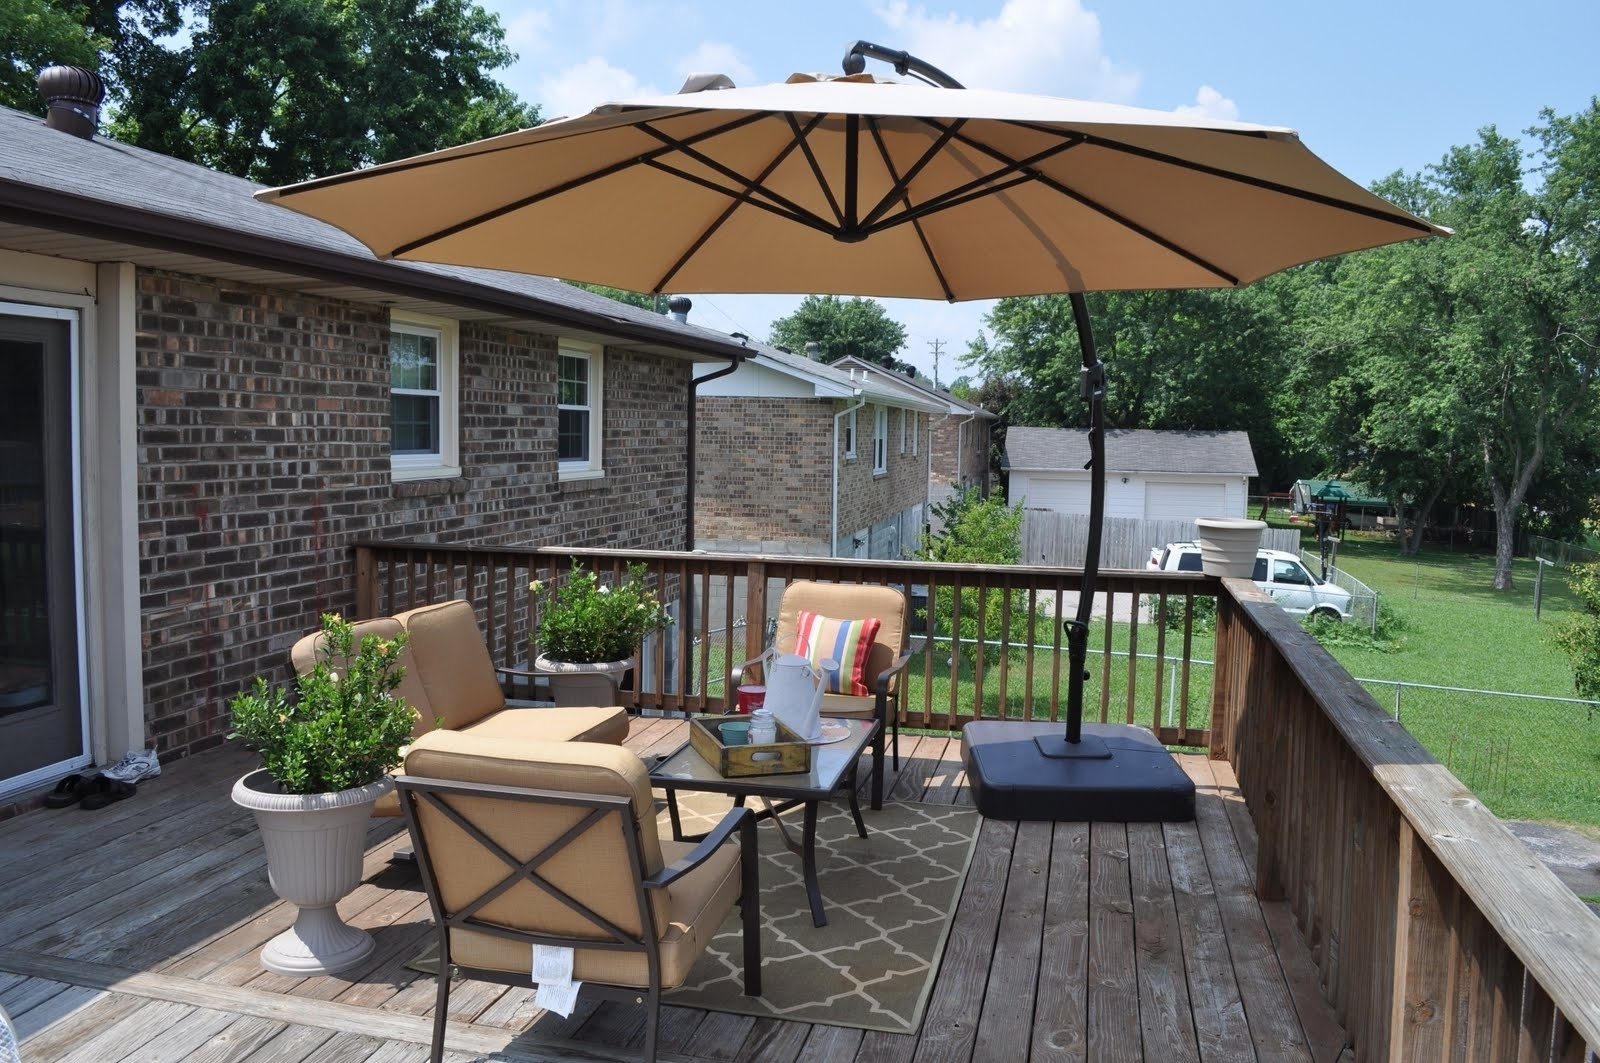 Garden: Enchanting Outdoor Patio Decor Ideas With Patio Umbrellas Within Fashionable Patio Deck Umbrellas (View 5 of 20)